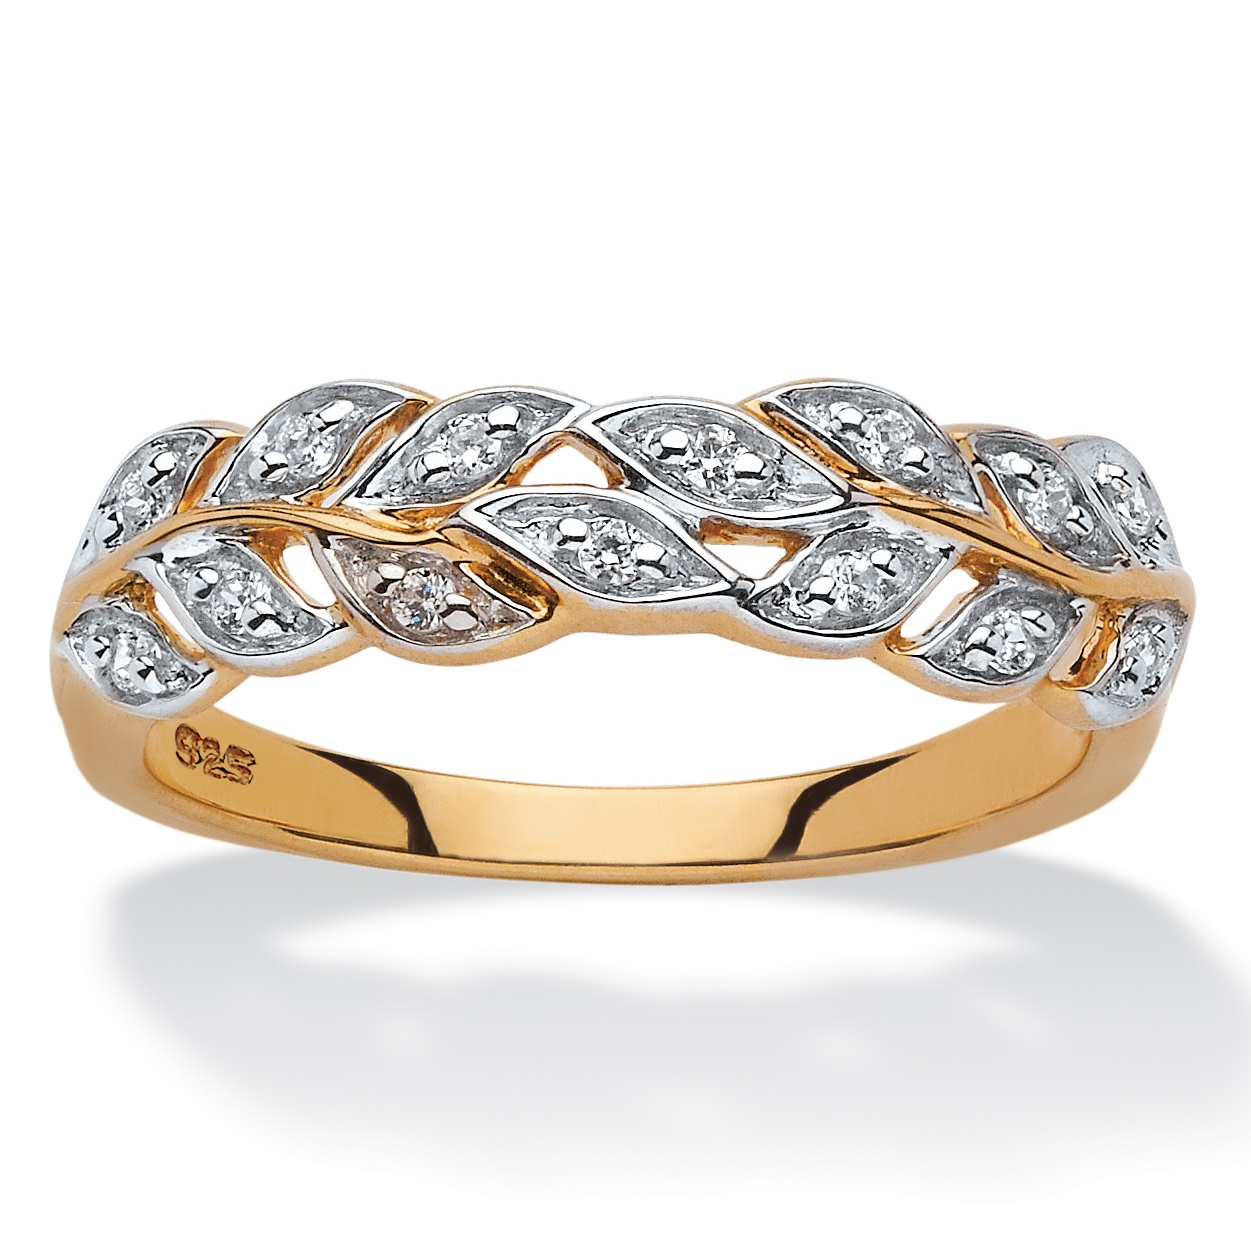 Hundreds of affordable women's rings, up to 75% off! Gorgeous women's sterling silver rings, CZ rings, engagement & wedding rings that are affordable but not cheap.